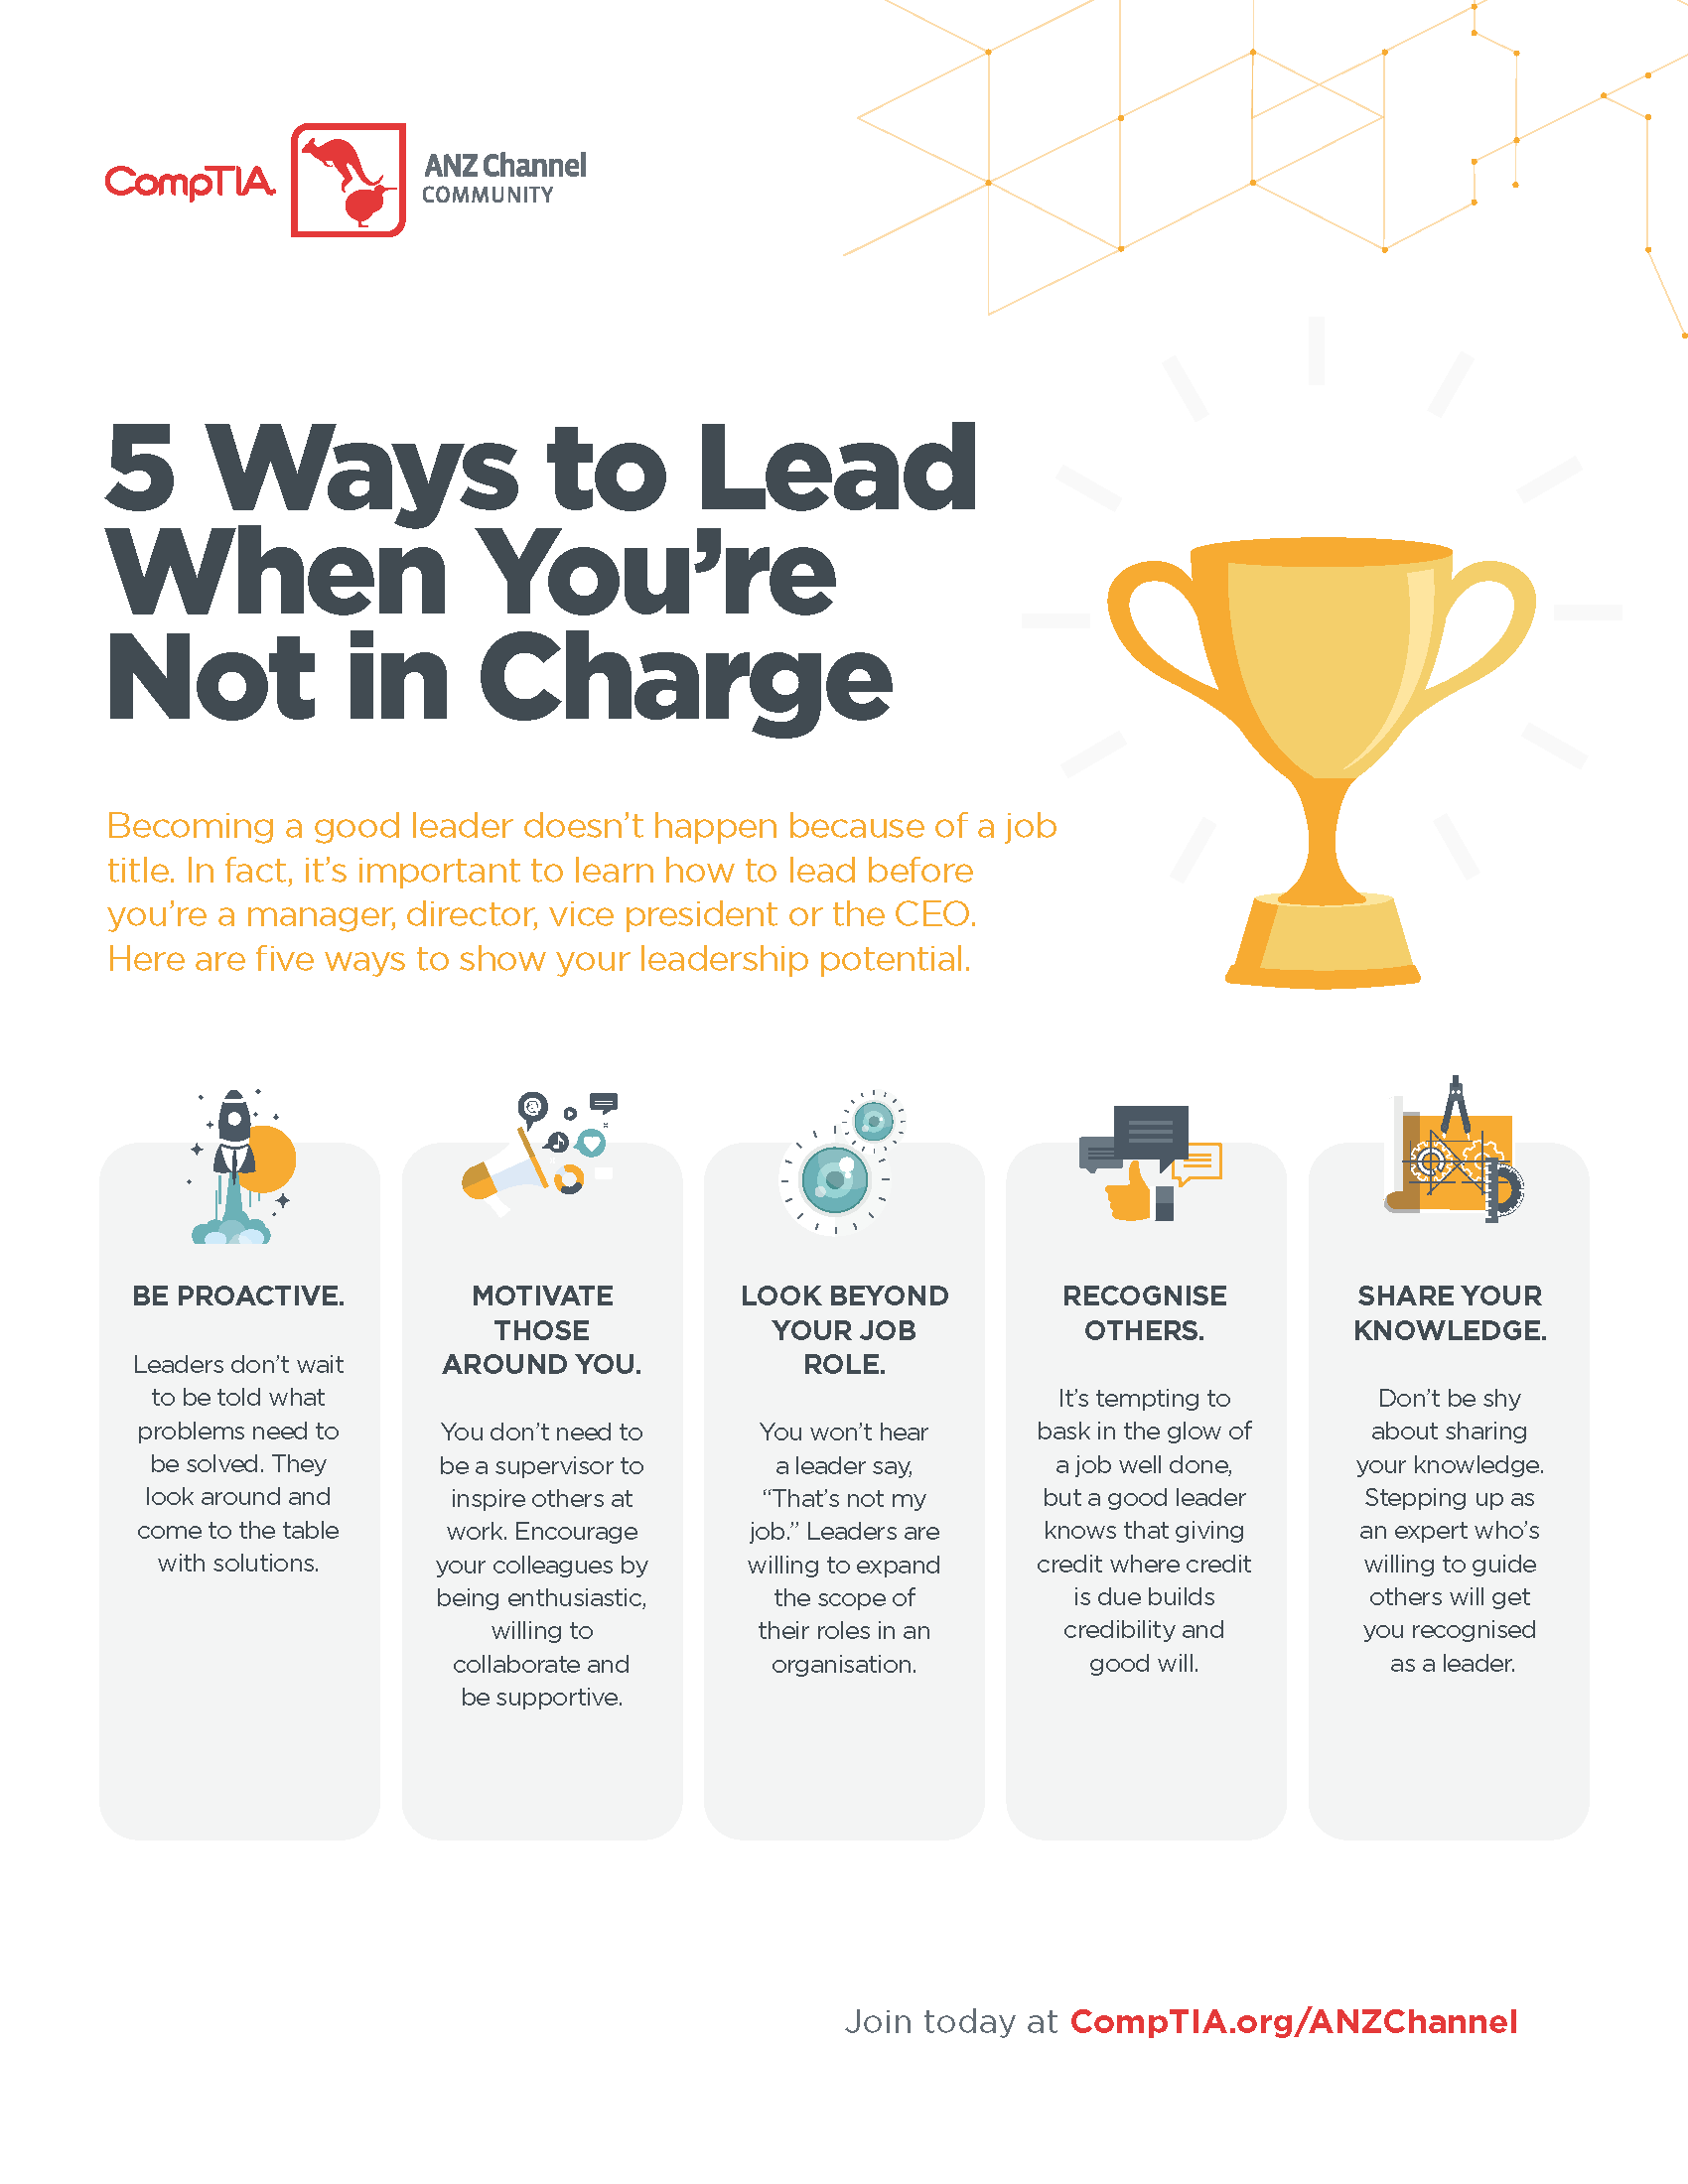 5 Ways to Lead When Youre Not In Charge